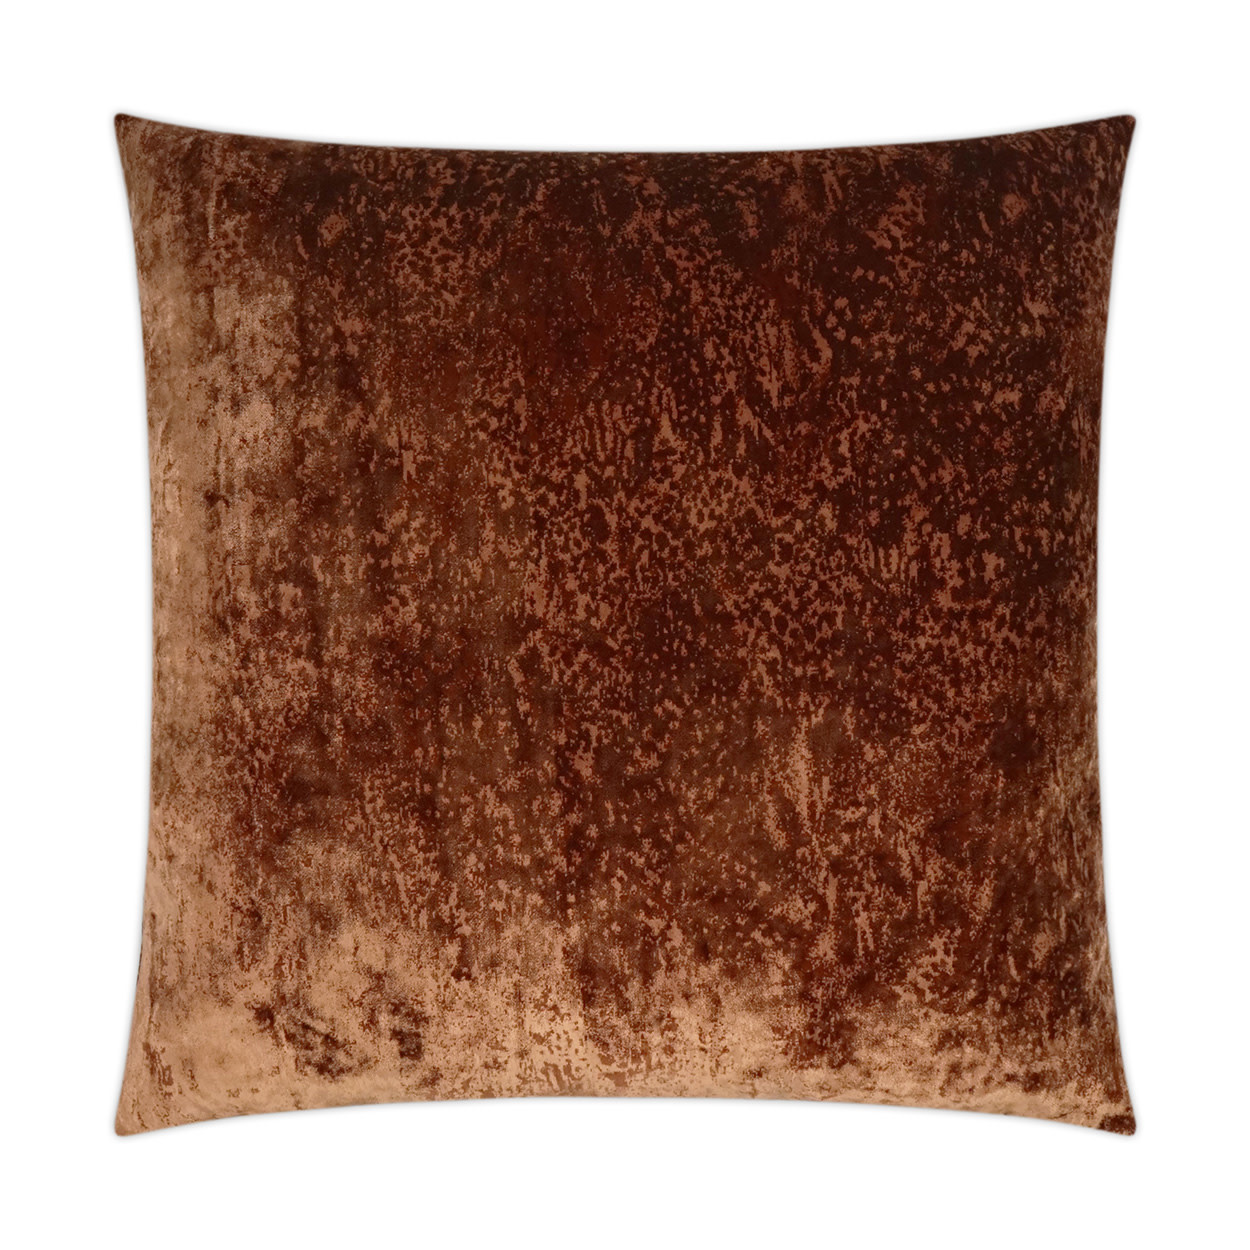 Grated Pillow - Copper Coin 20 x 20